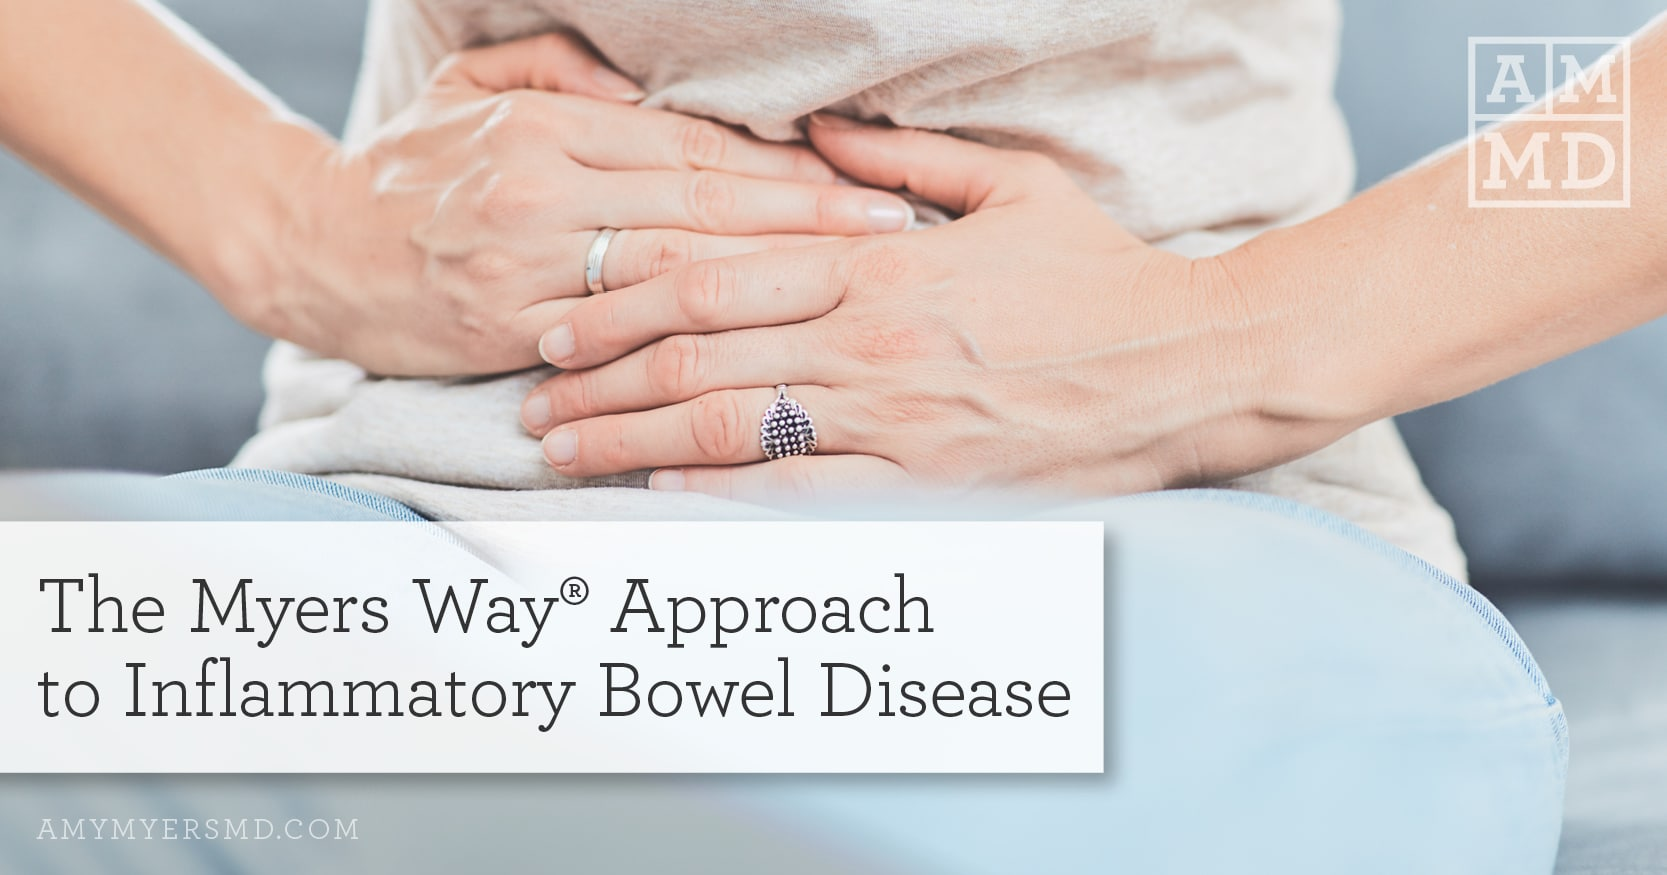 The Myers Way® Approach to Inflammatory Bowel Disease (IBD) - Woman holding her stomach - Featured Image - Amy Myers MD